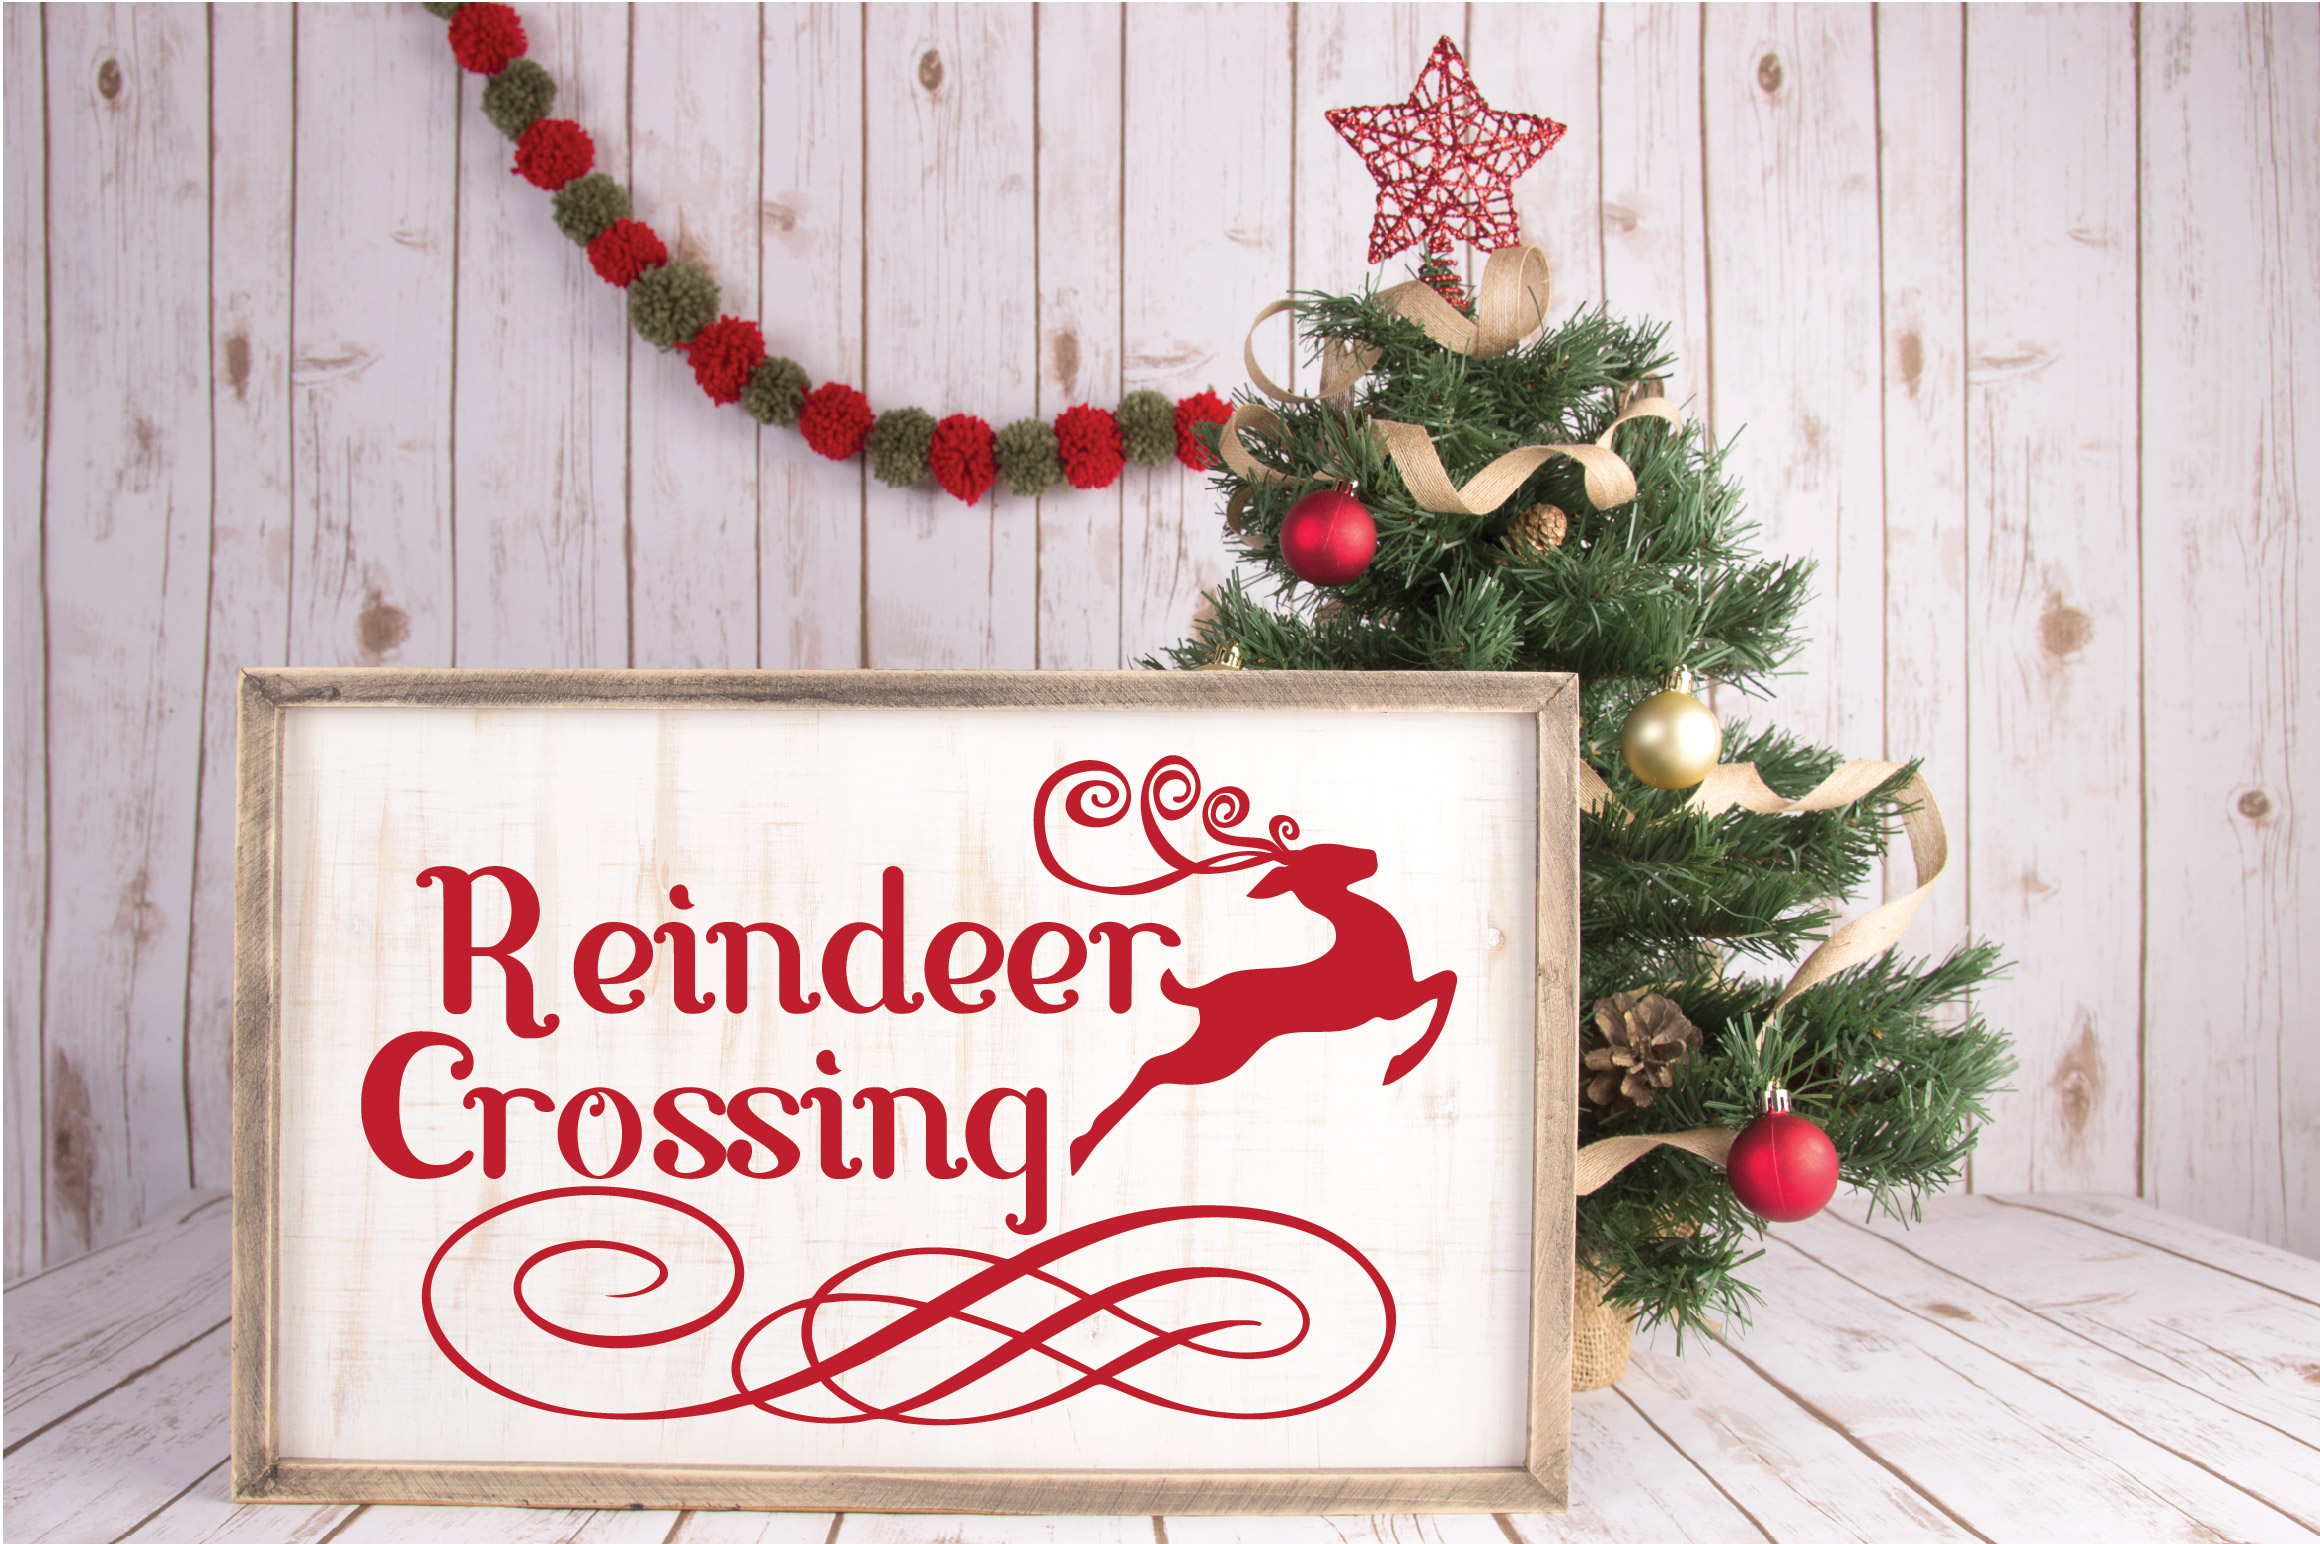 Christmas SVG Cut File - Reindeer Crossing SVG DXF PNG EPS example image 2